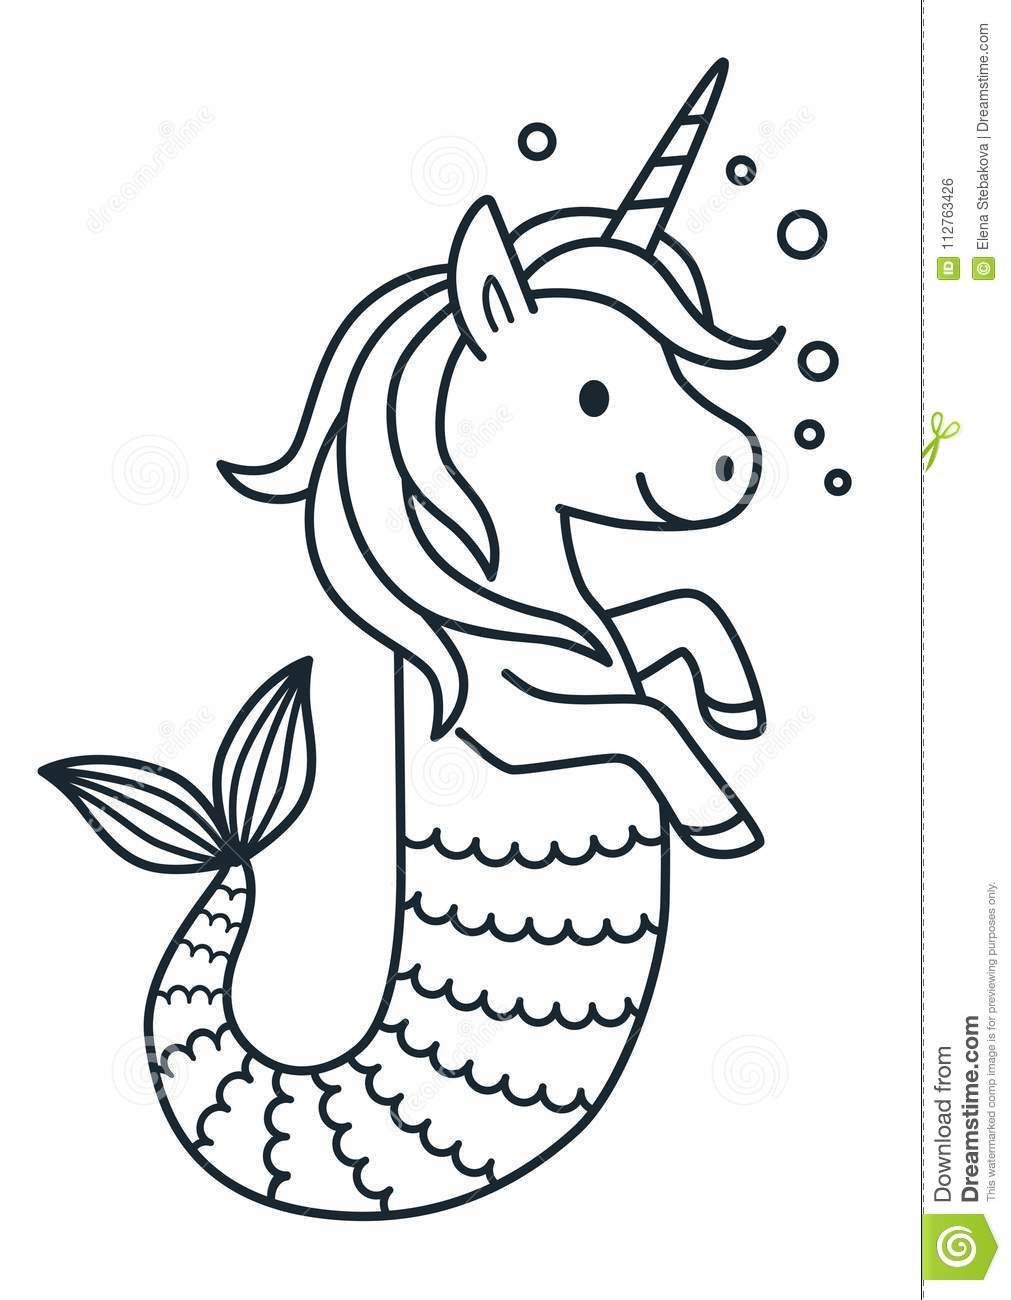 A Unicorn Coloring Page Youngandtae Com Mermaid Coloring Pages Mermaid Coloring Book Unicorn Coloring Pages